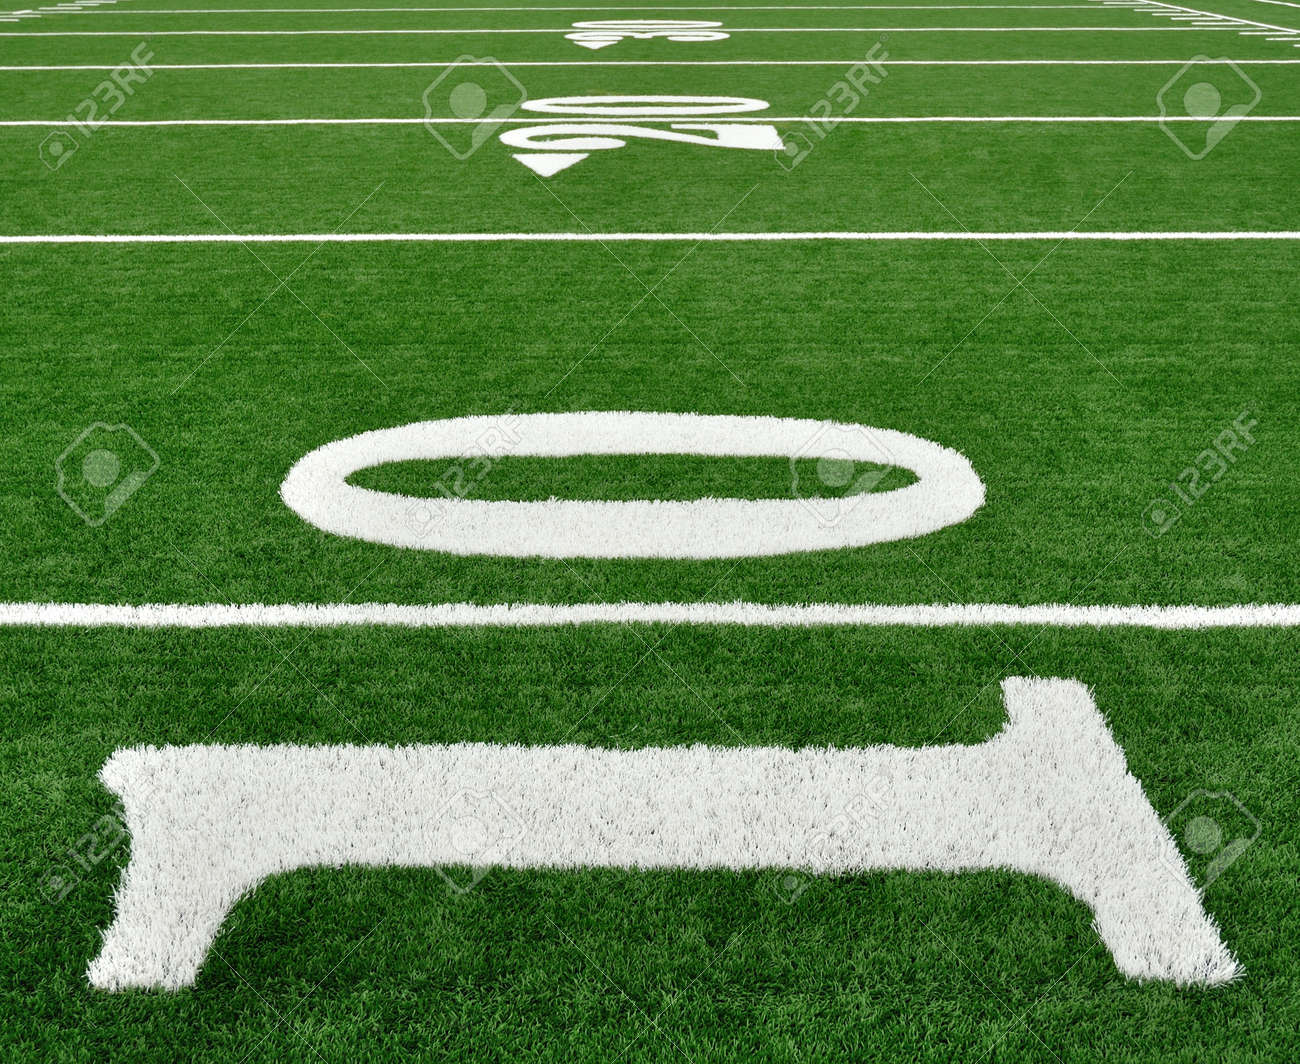 10 20 30 Yard Line On American Football Field Stock Photo Picture And Royalty Free Image Image 10413326